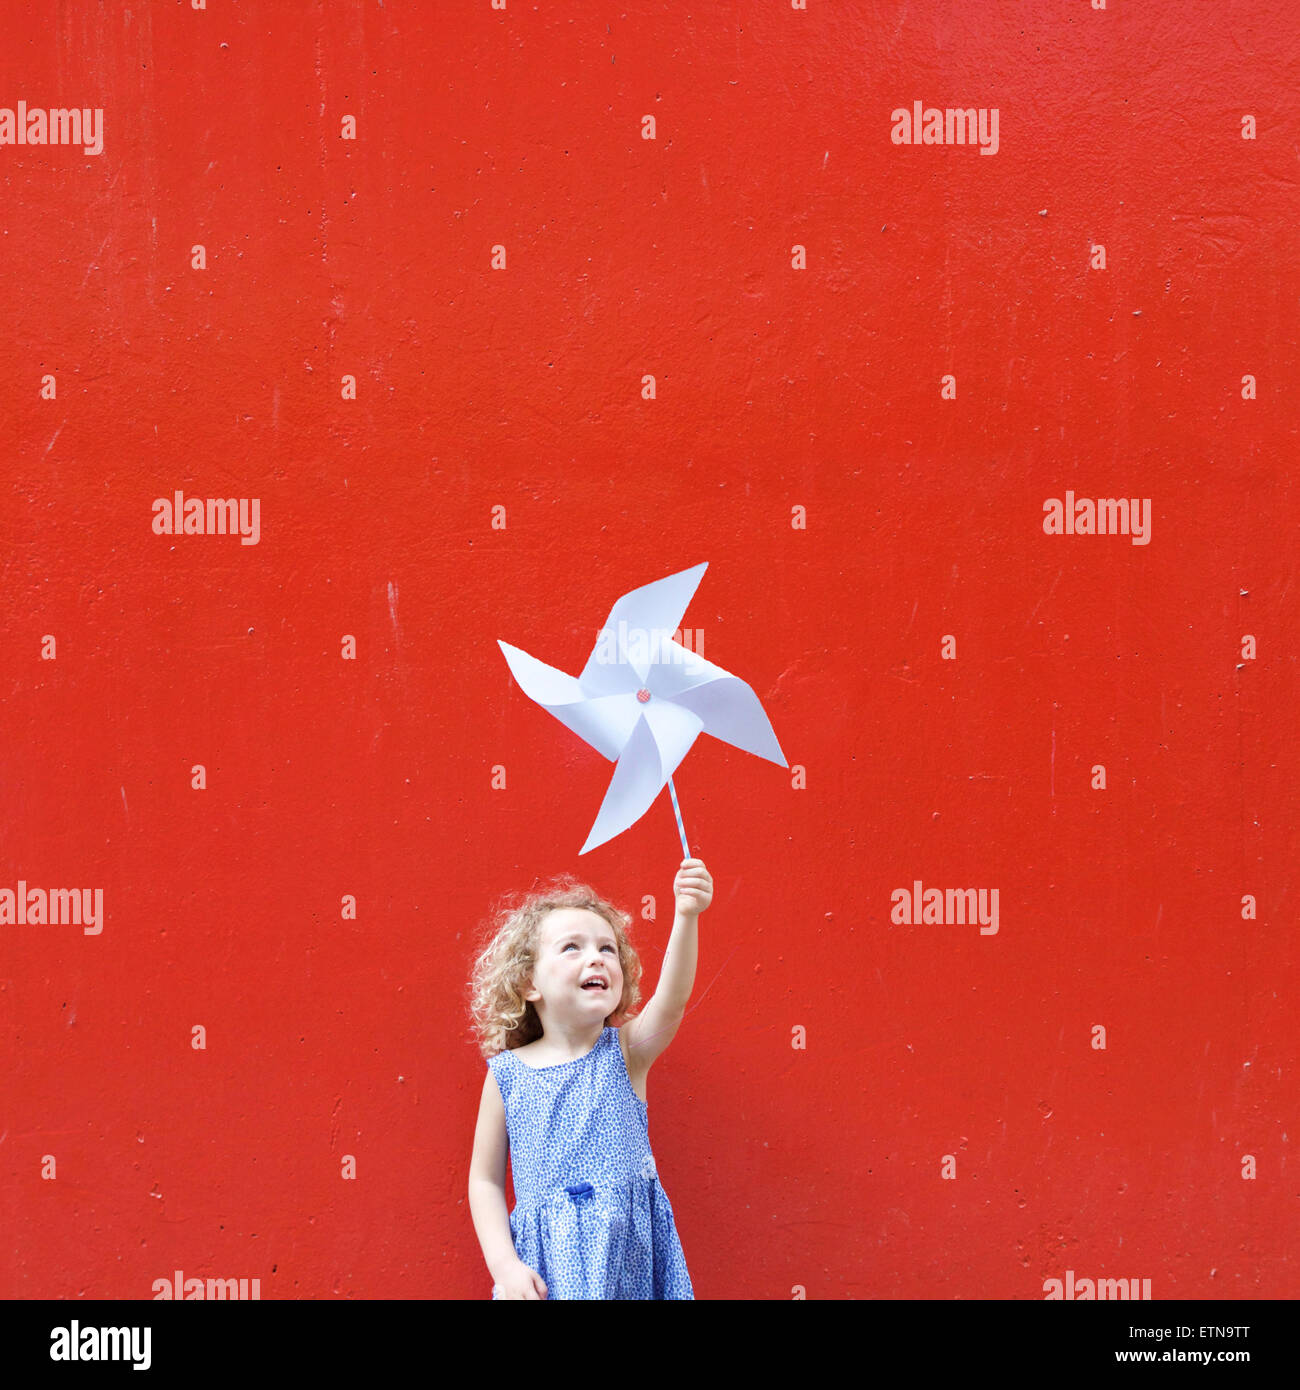 Smiling girl holding a pinwheel dans l'air de faire un drapeau de Hong Kong Photo Stock